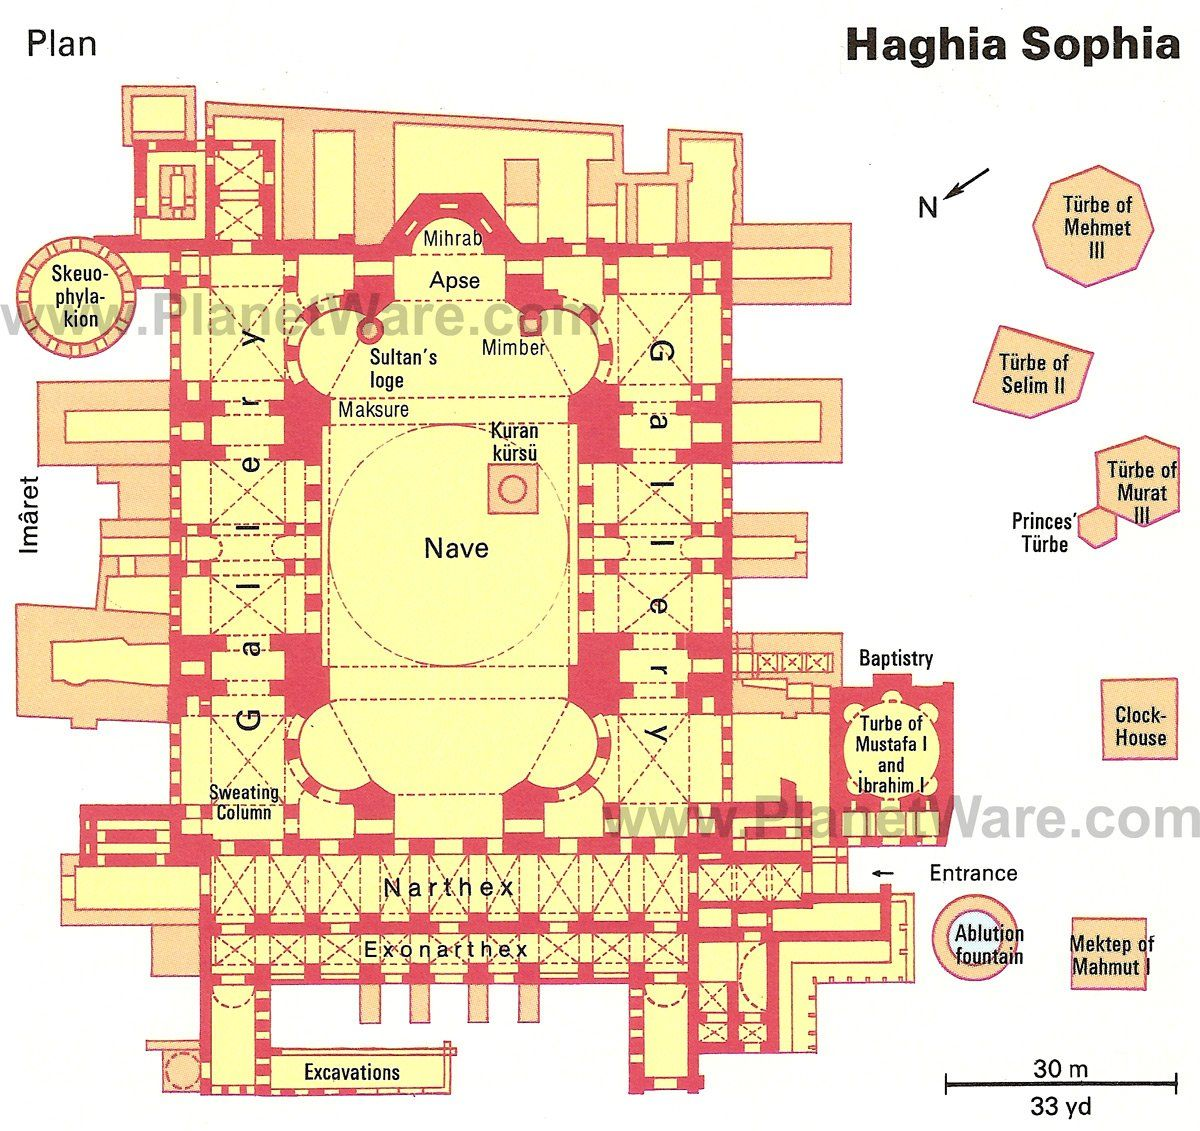 Pin By Nikolay Stefanov On Konstantinople Hagia Sophia City Layout Historical Architecture